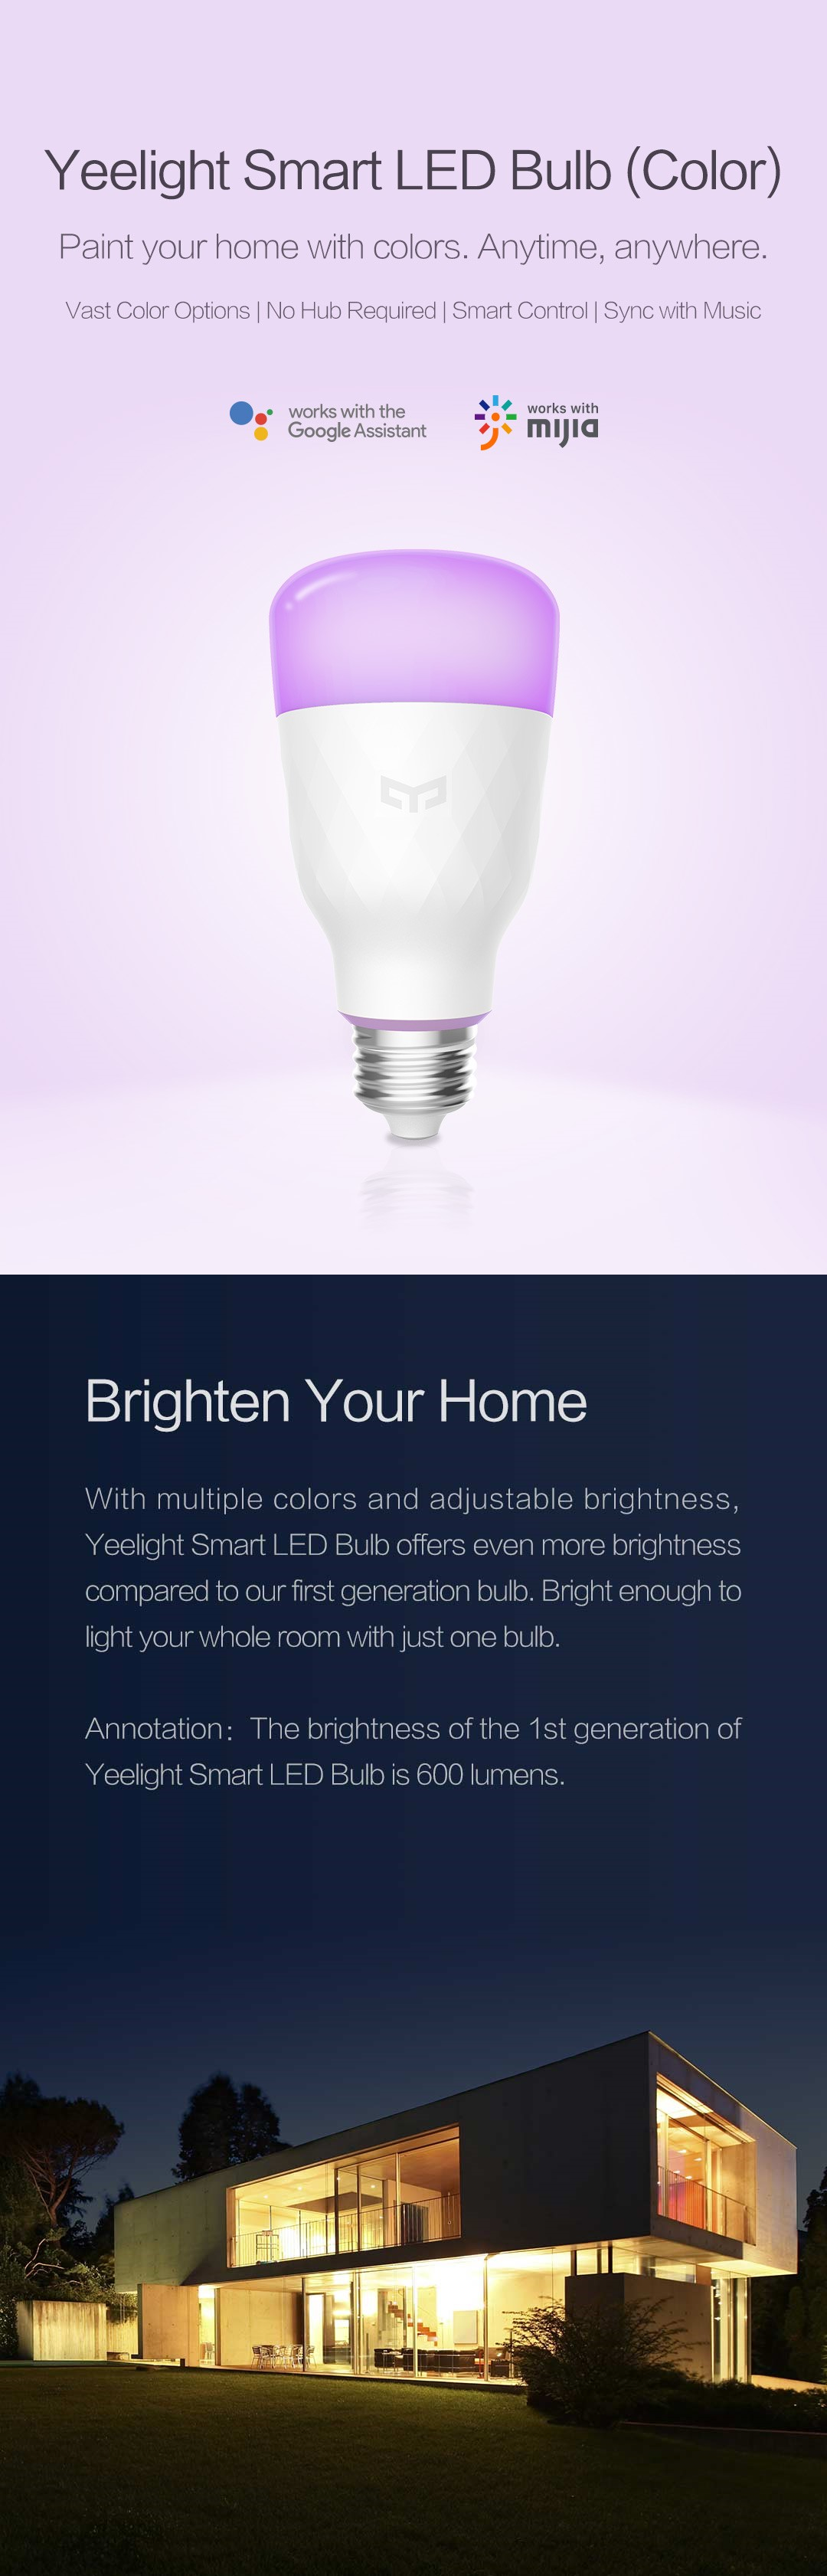 Xiaomi Yeelight YLDP06YL Smart LED Bulb (Color) Upgraded Version